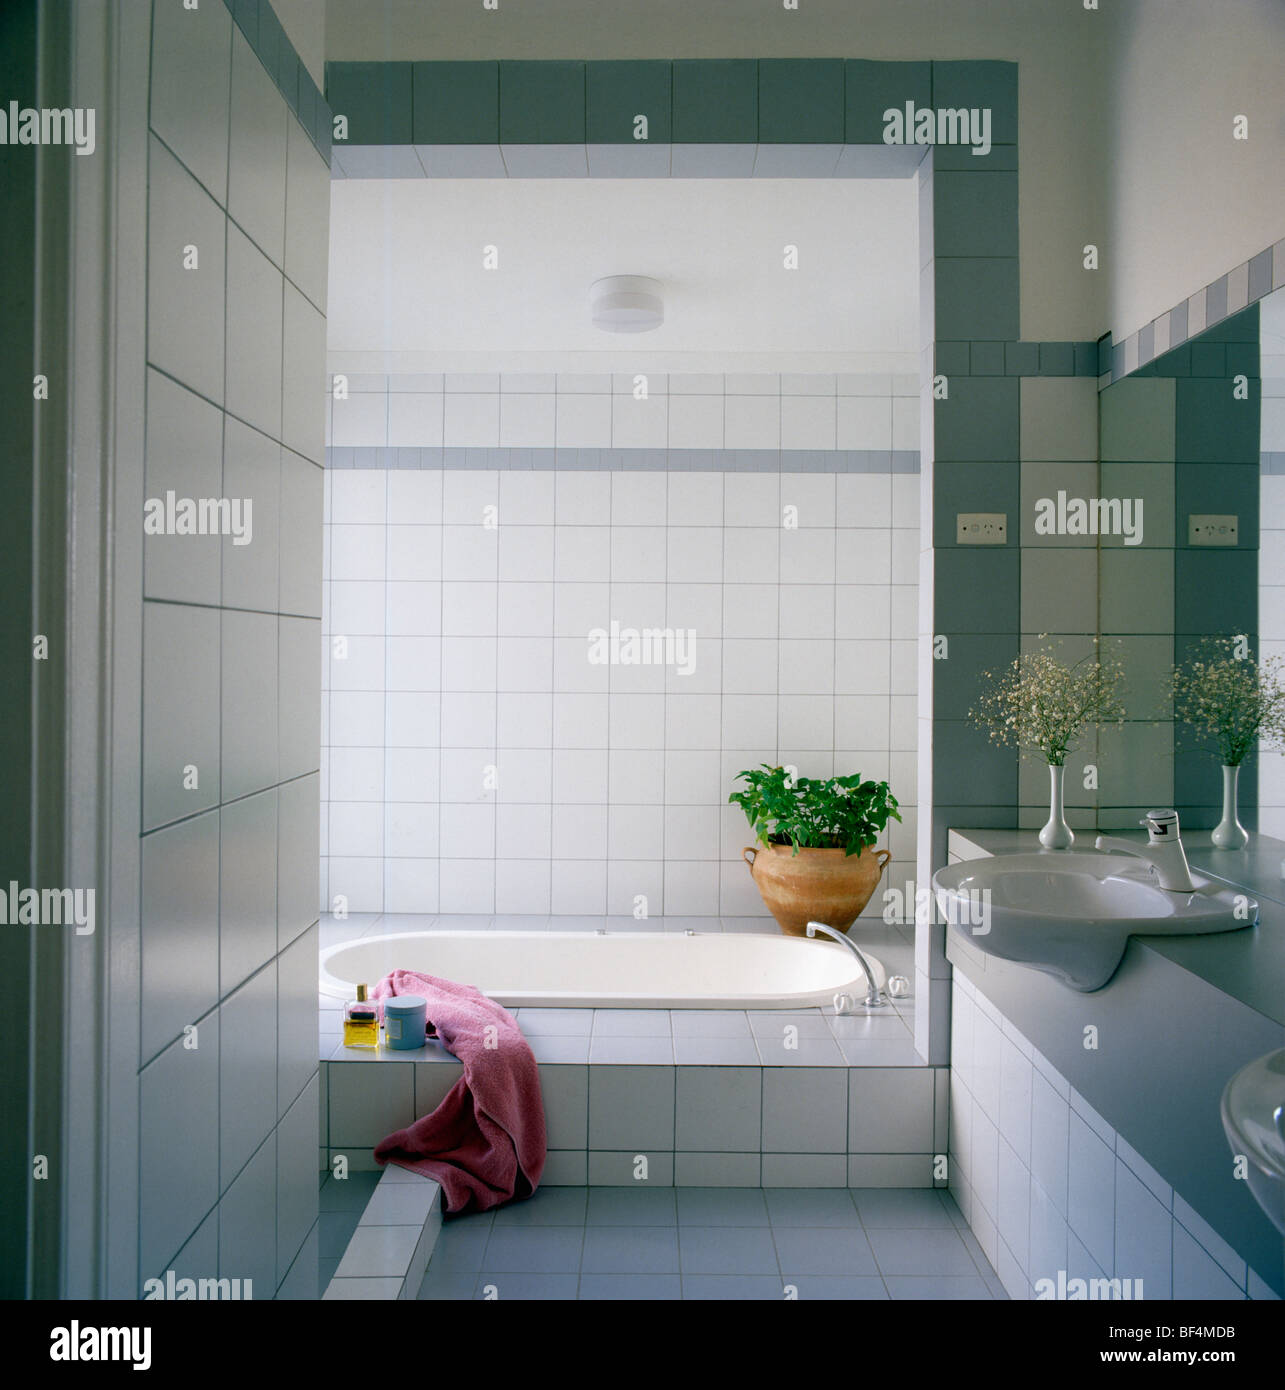 Modern white bathroom with pink towel on low bath with white tiled ...